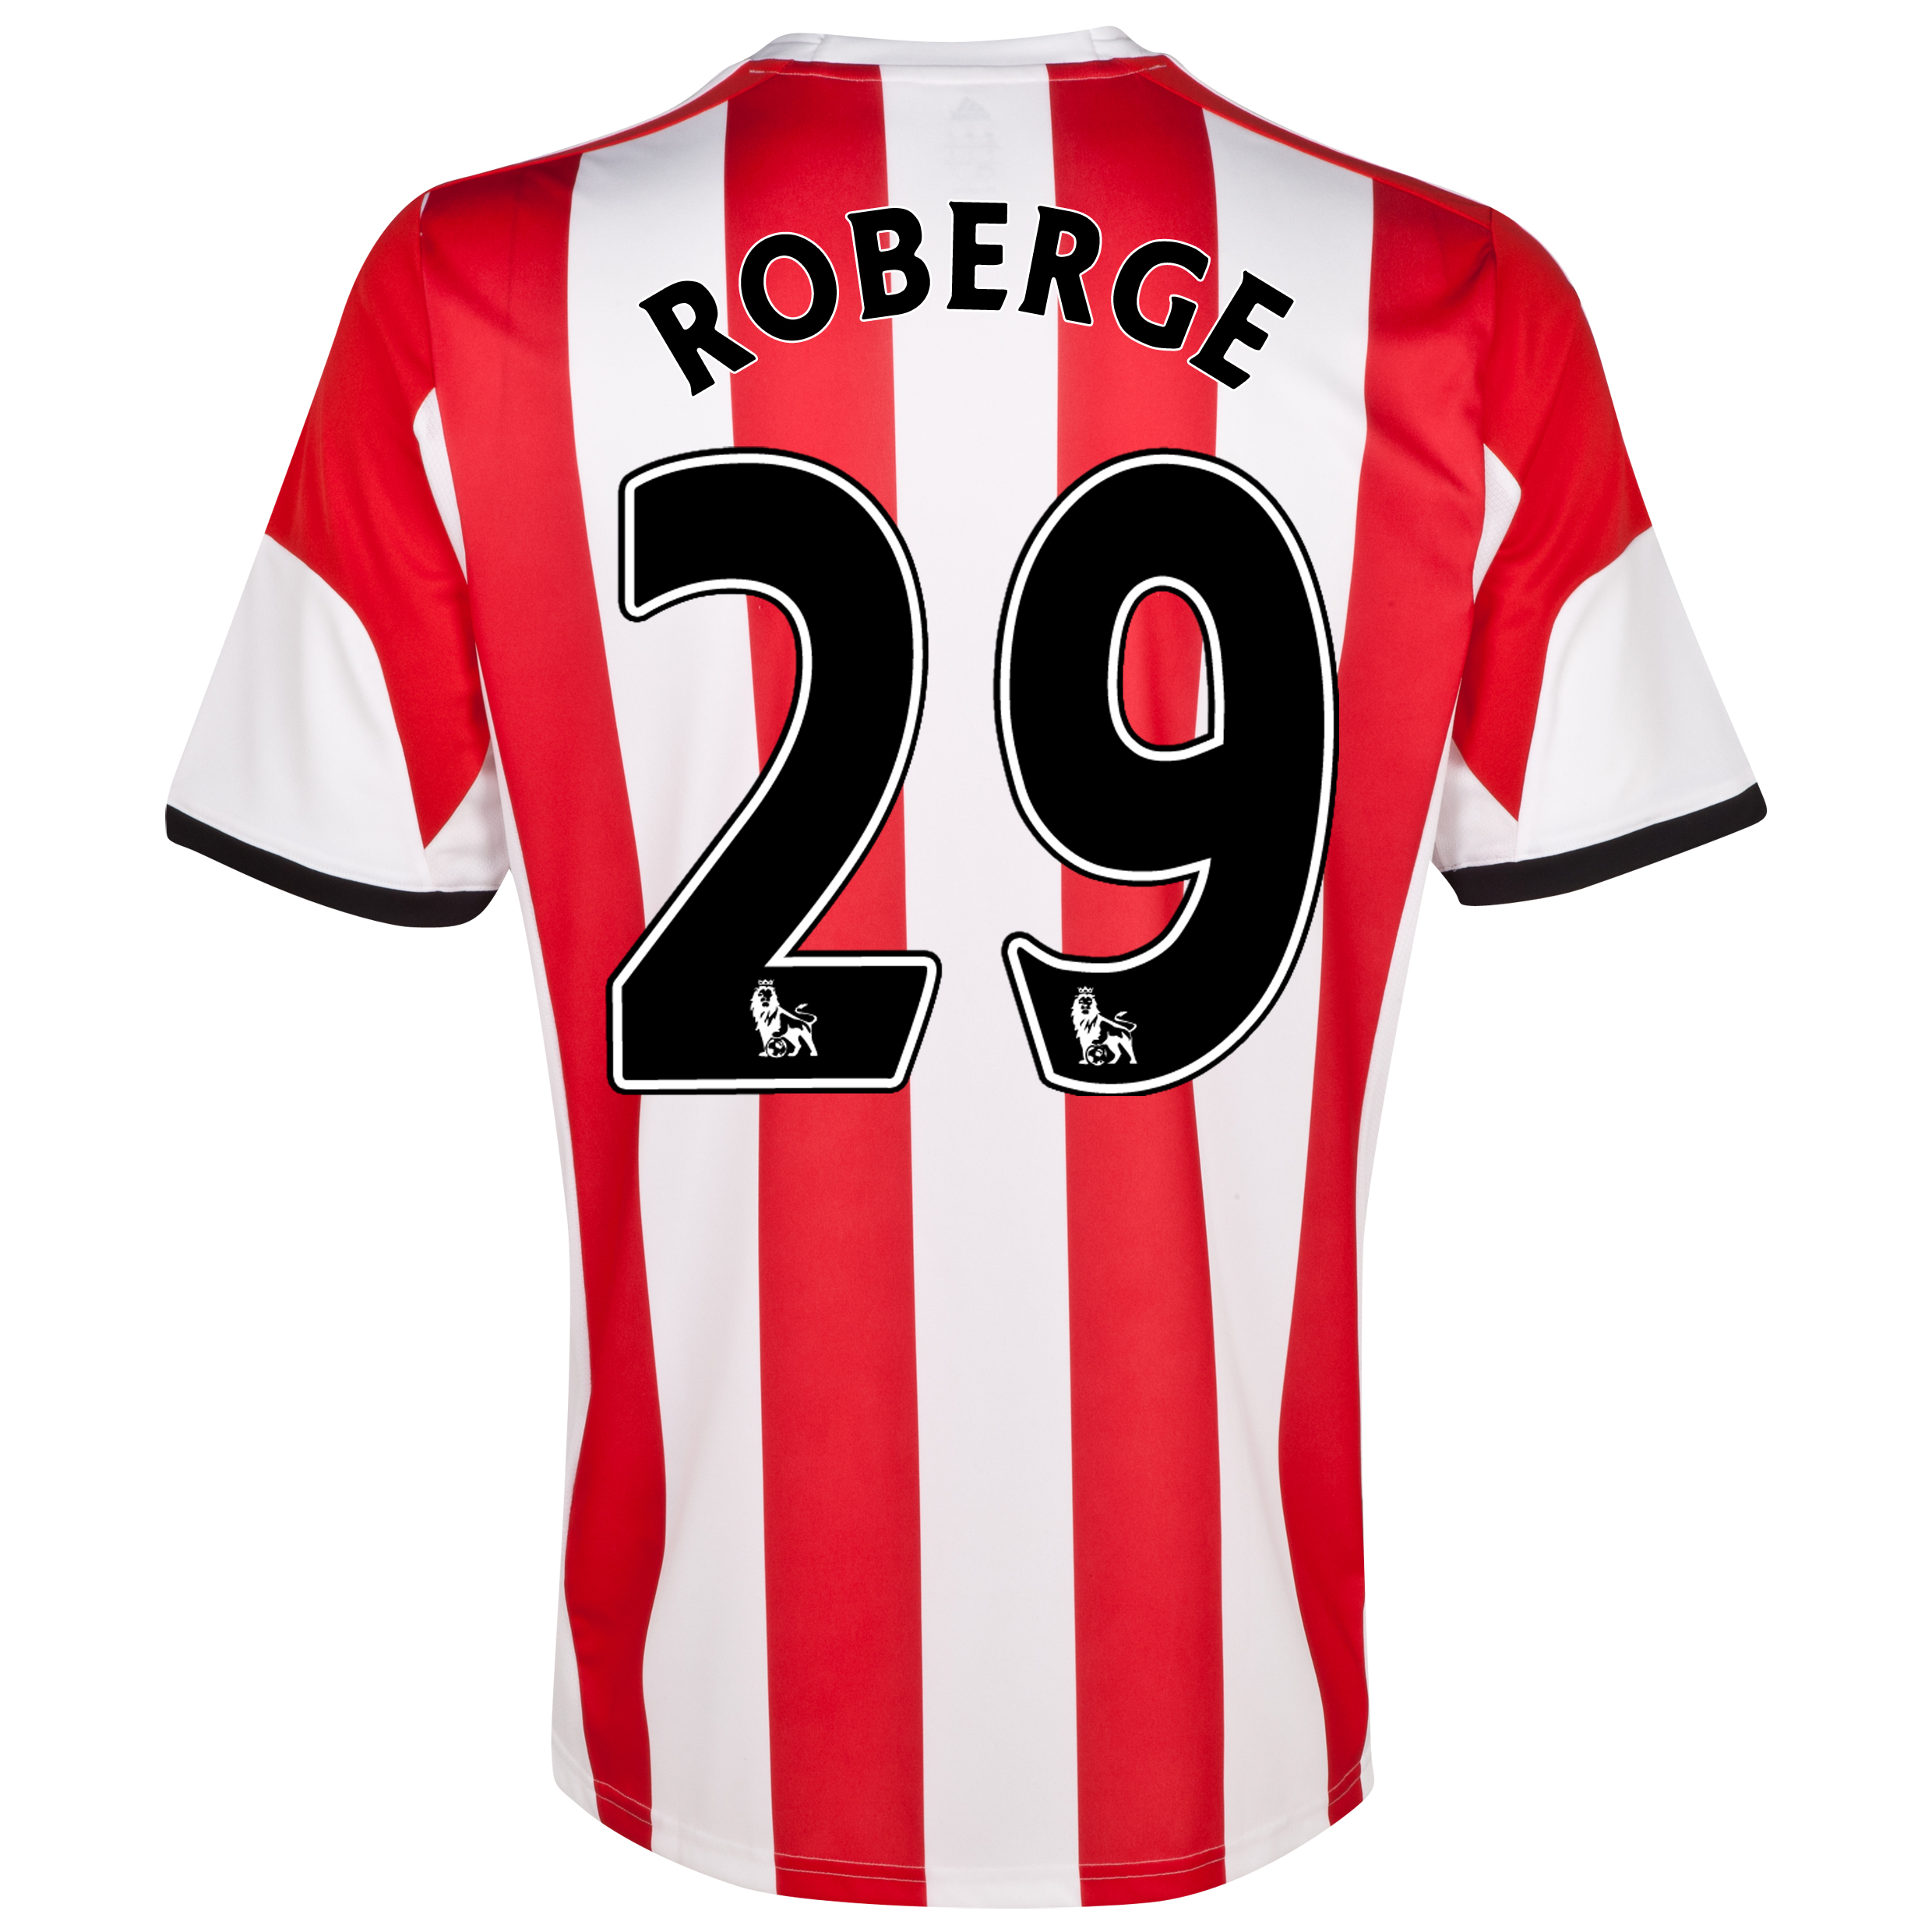 Sunderland Home Shirt 2013/14 with Roberge 29 printing